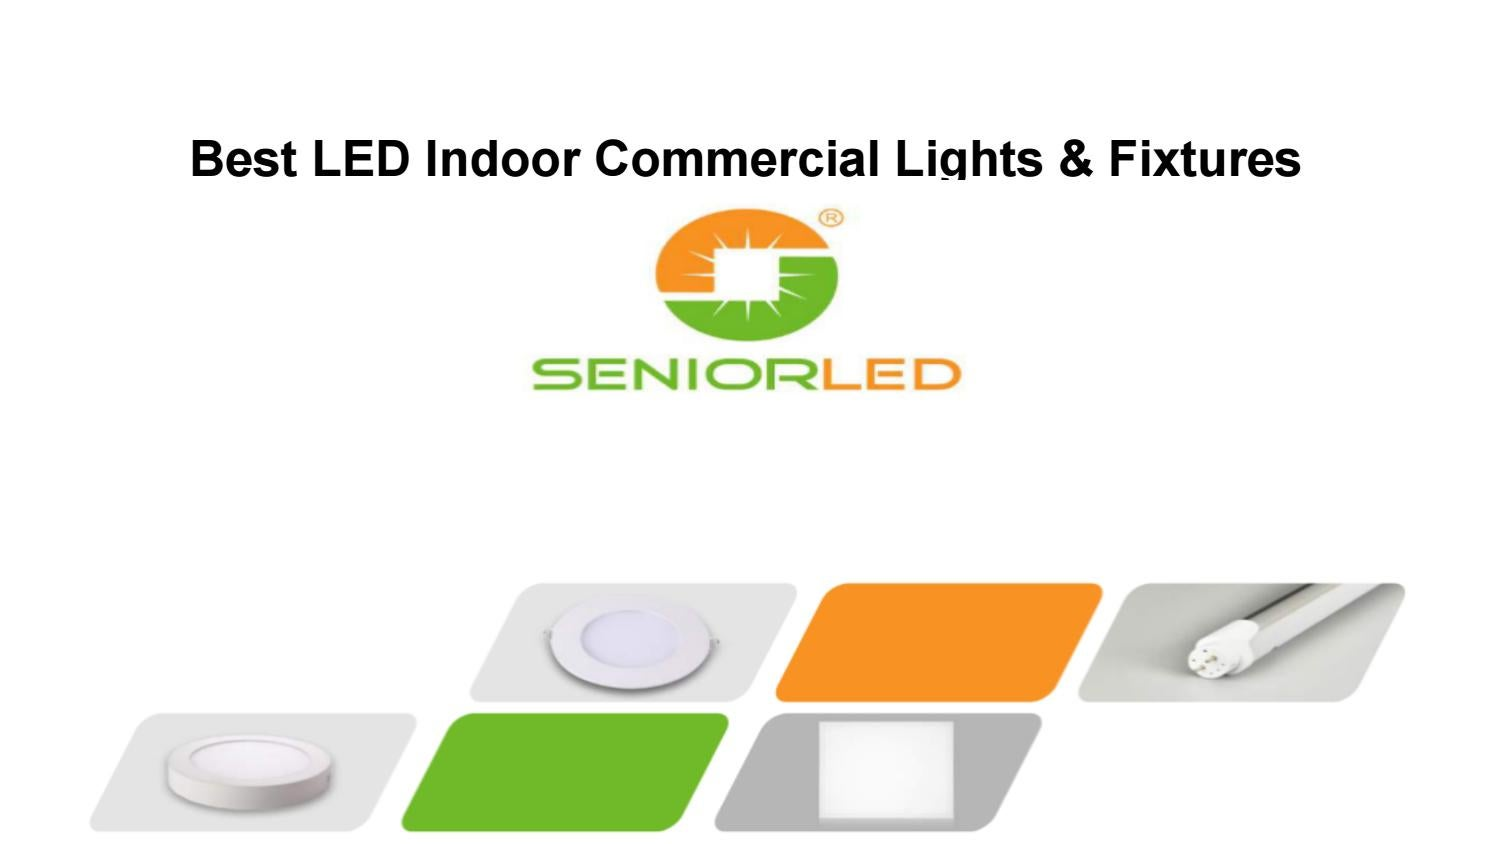 Best led indoor commercial lights ppt for corporate lighting